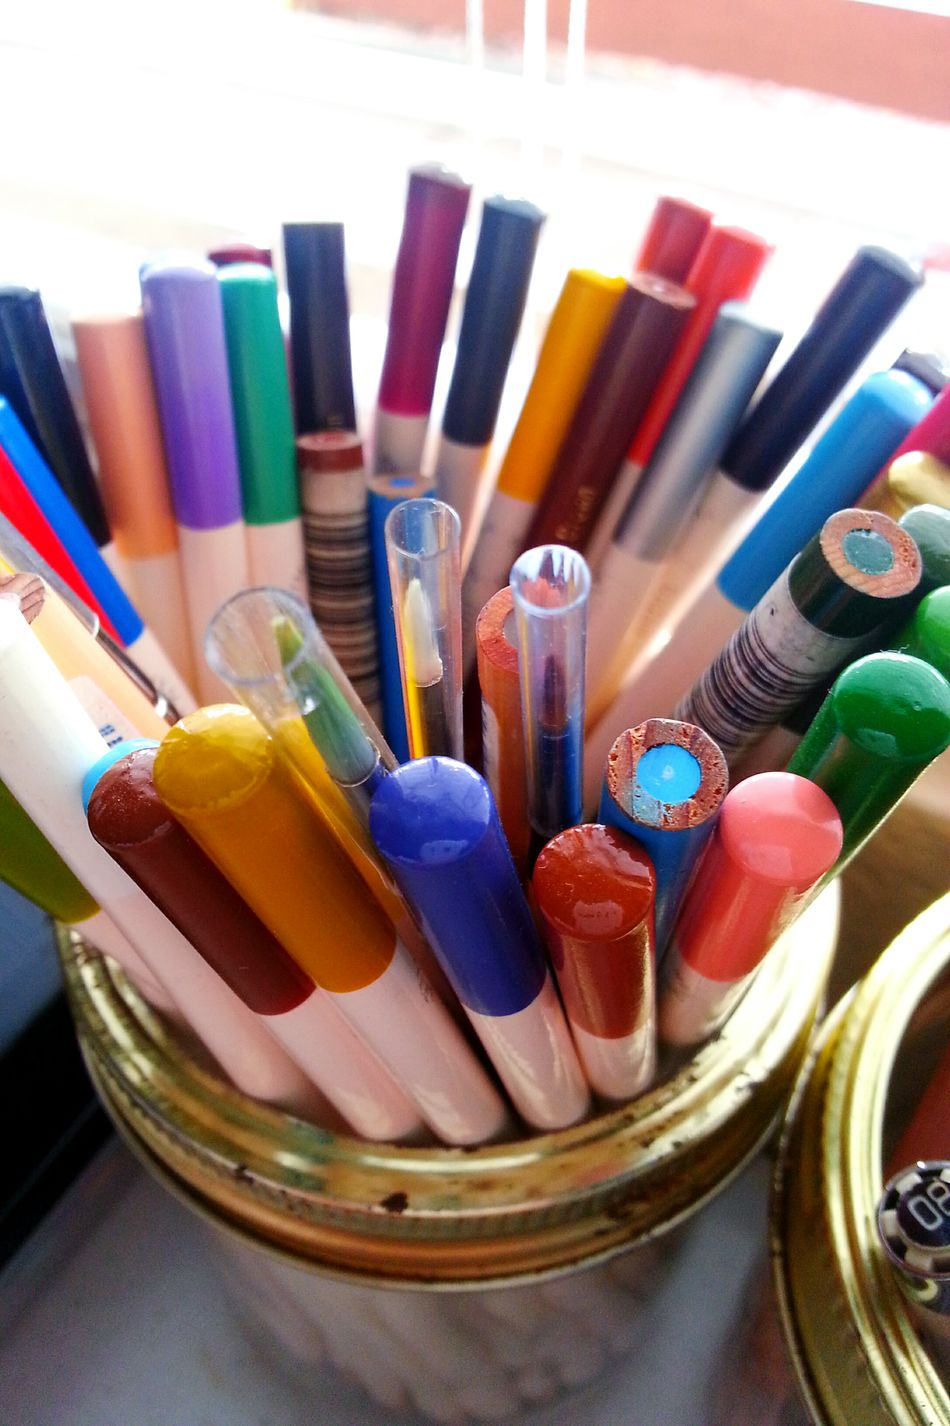 Tools Variation Pencil Colored Pencil Multi Colored Choice Close-up Day Fashion Sketching Colorful Art Creativity EyeEm Diversity